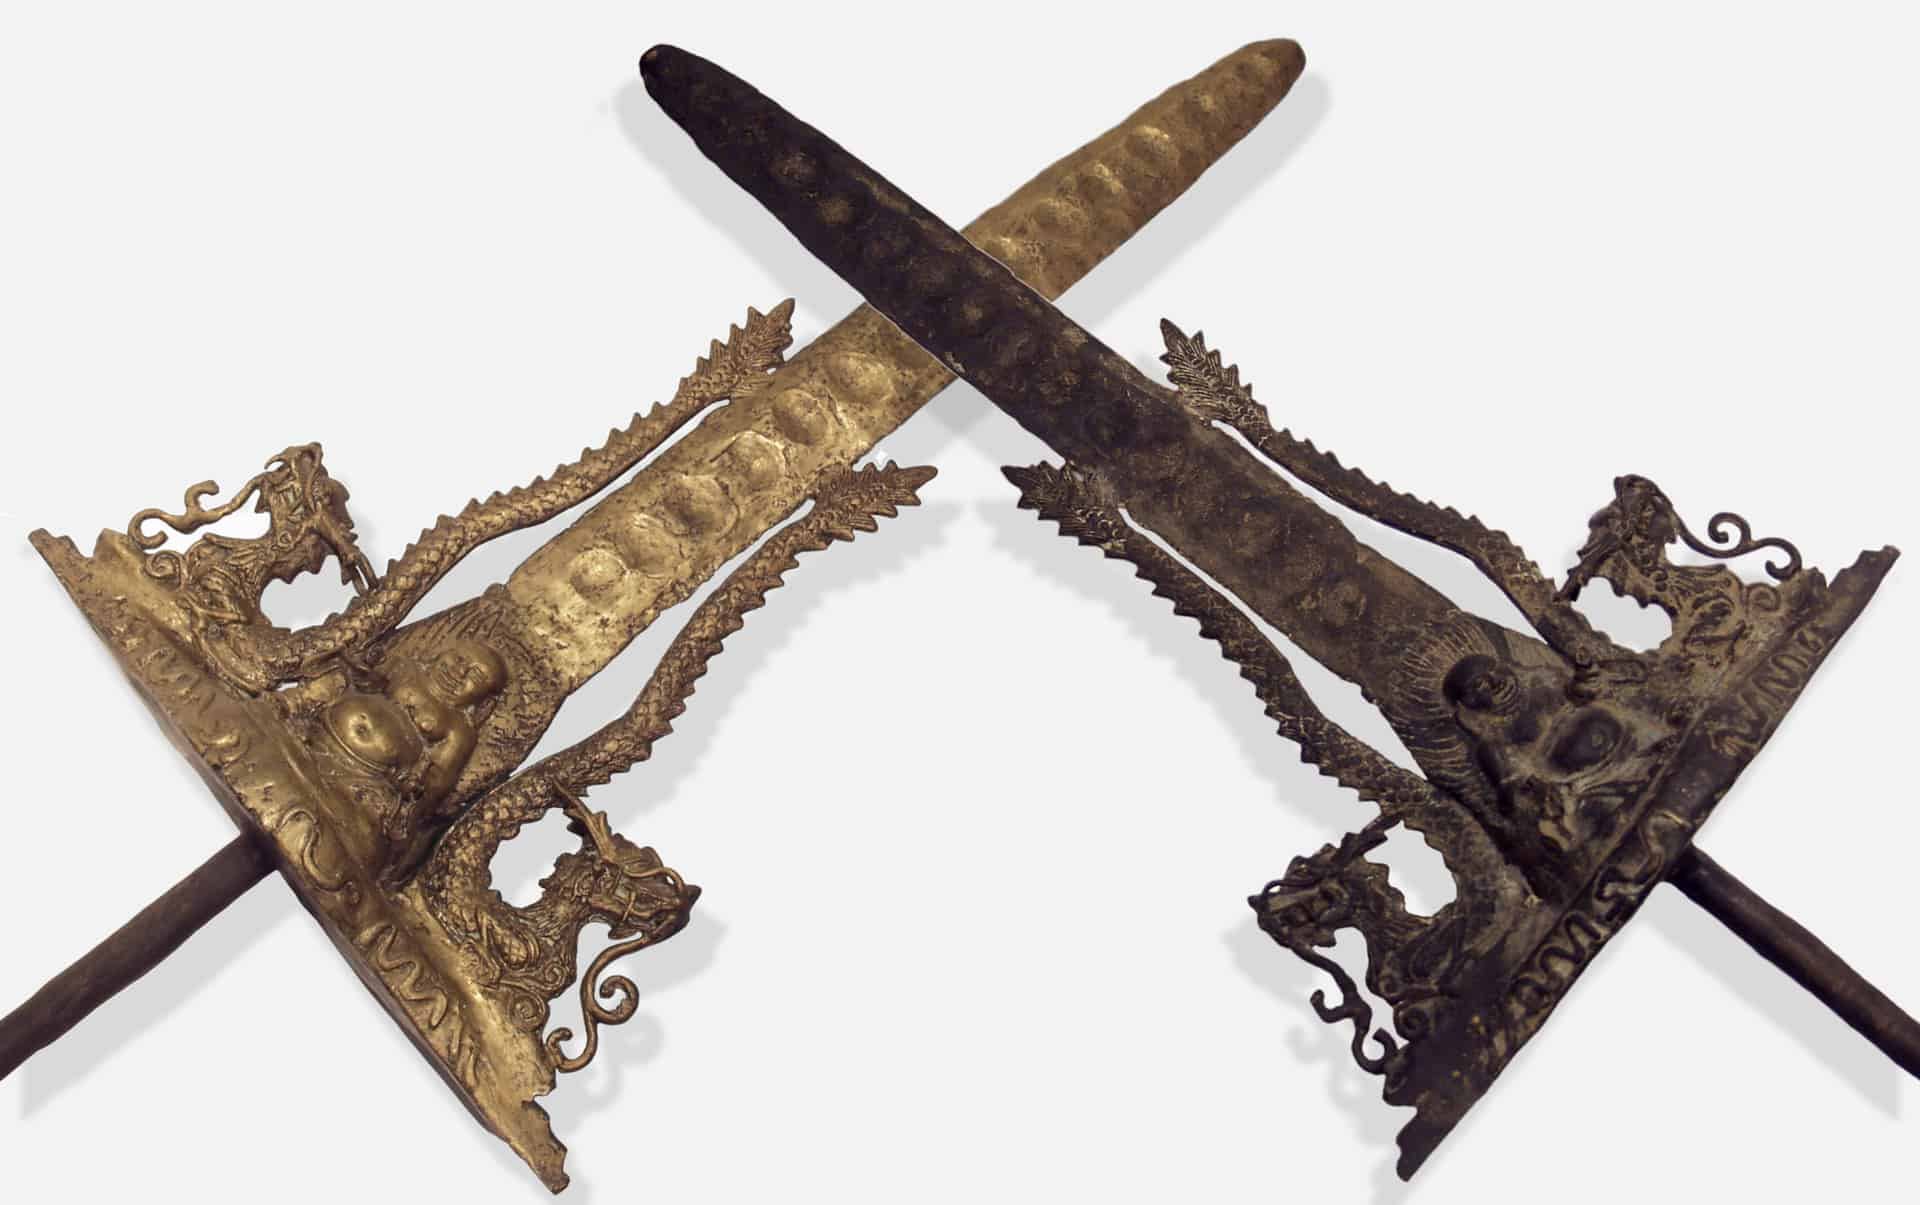 Both sides of the Anique Keris Sword Crisscrossed.